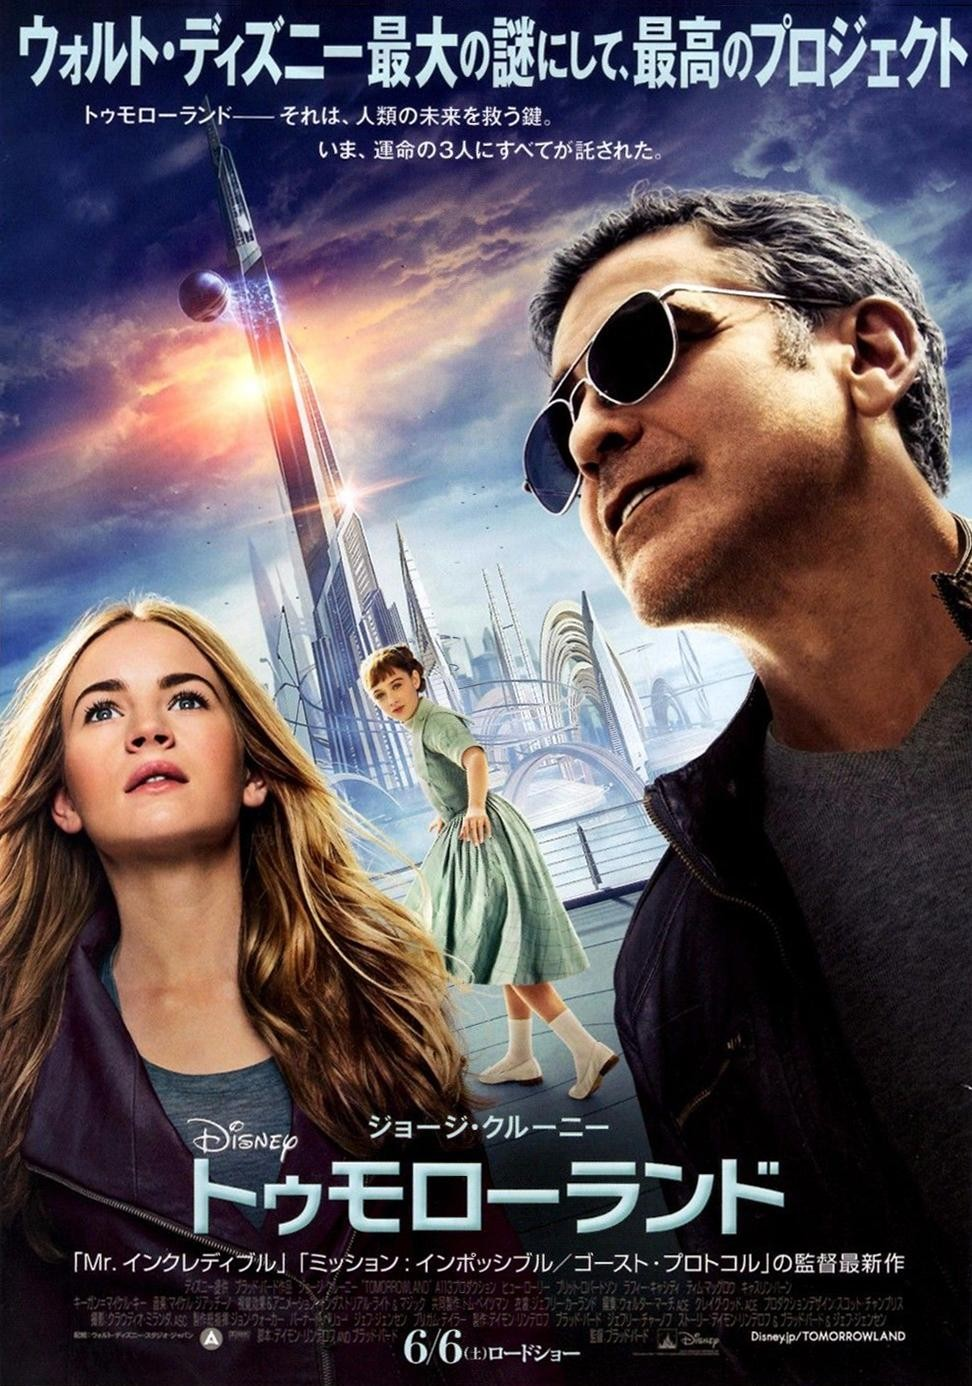 Tomorrowland-Poster-03Abril2015-02